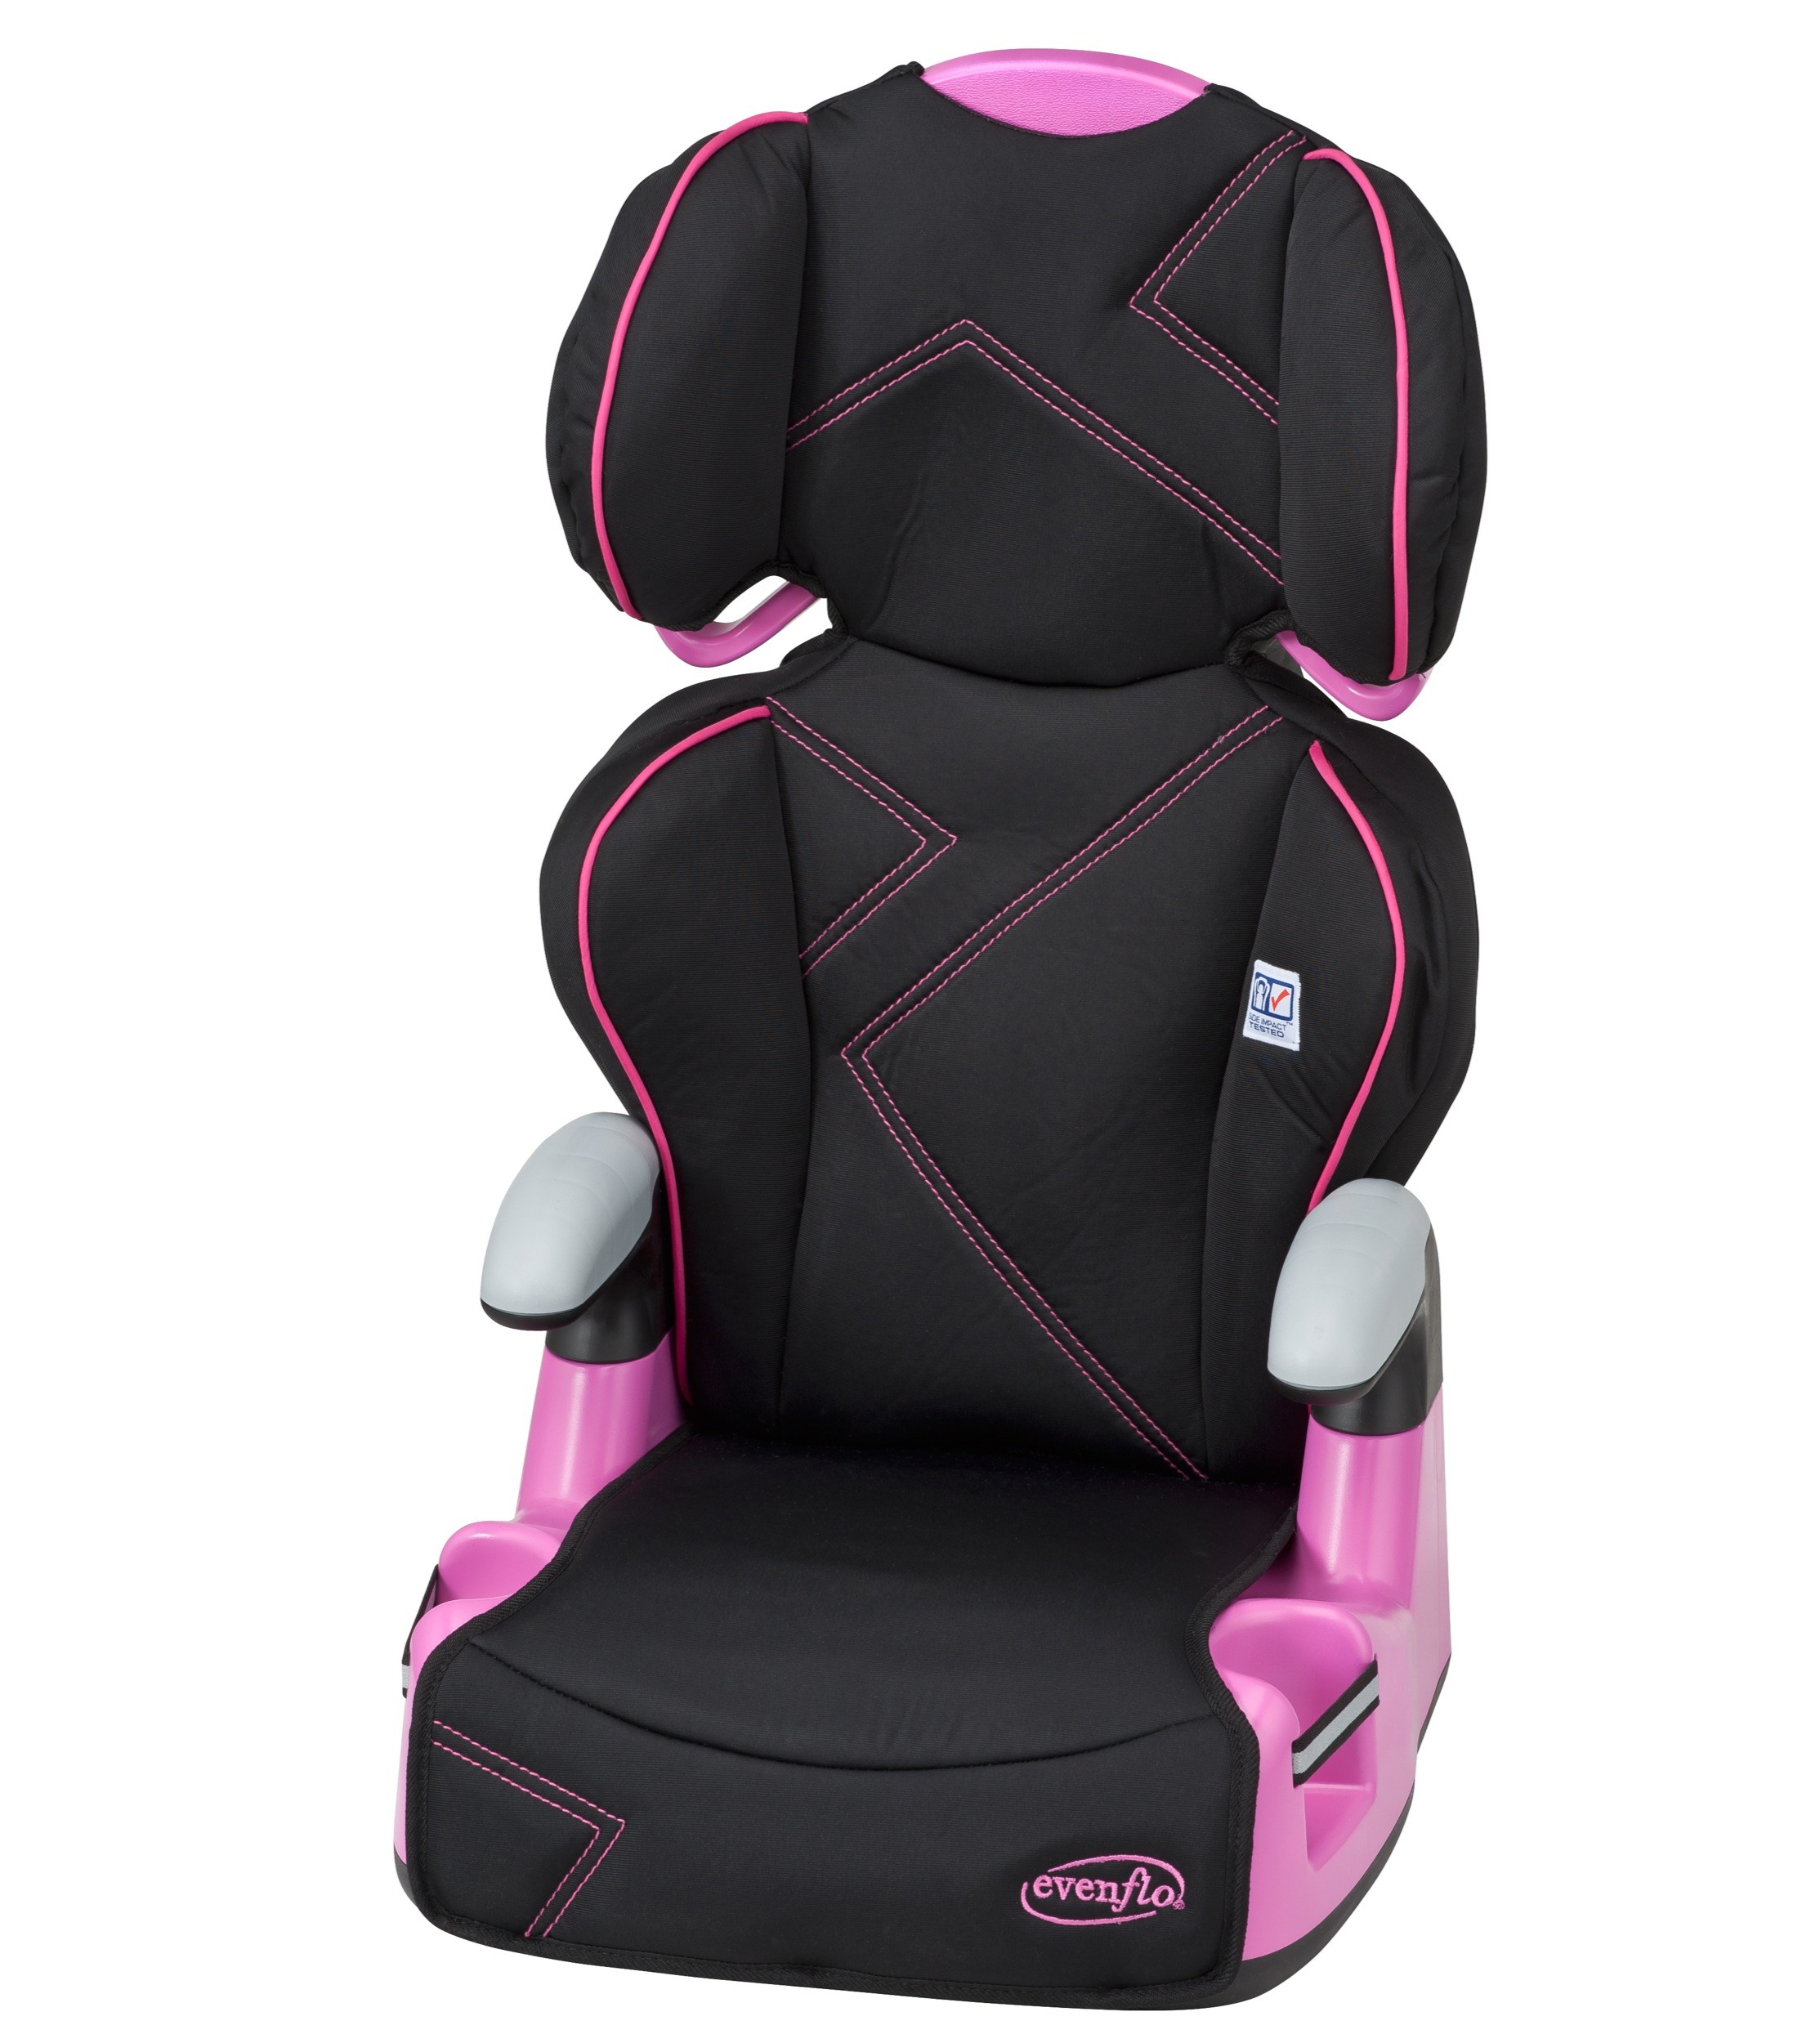 Evenflo AMP High Back Booster Car Seat, Pink Angles